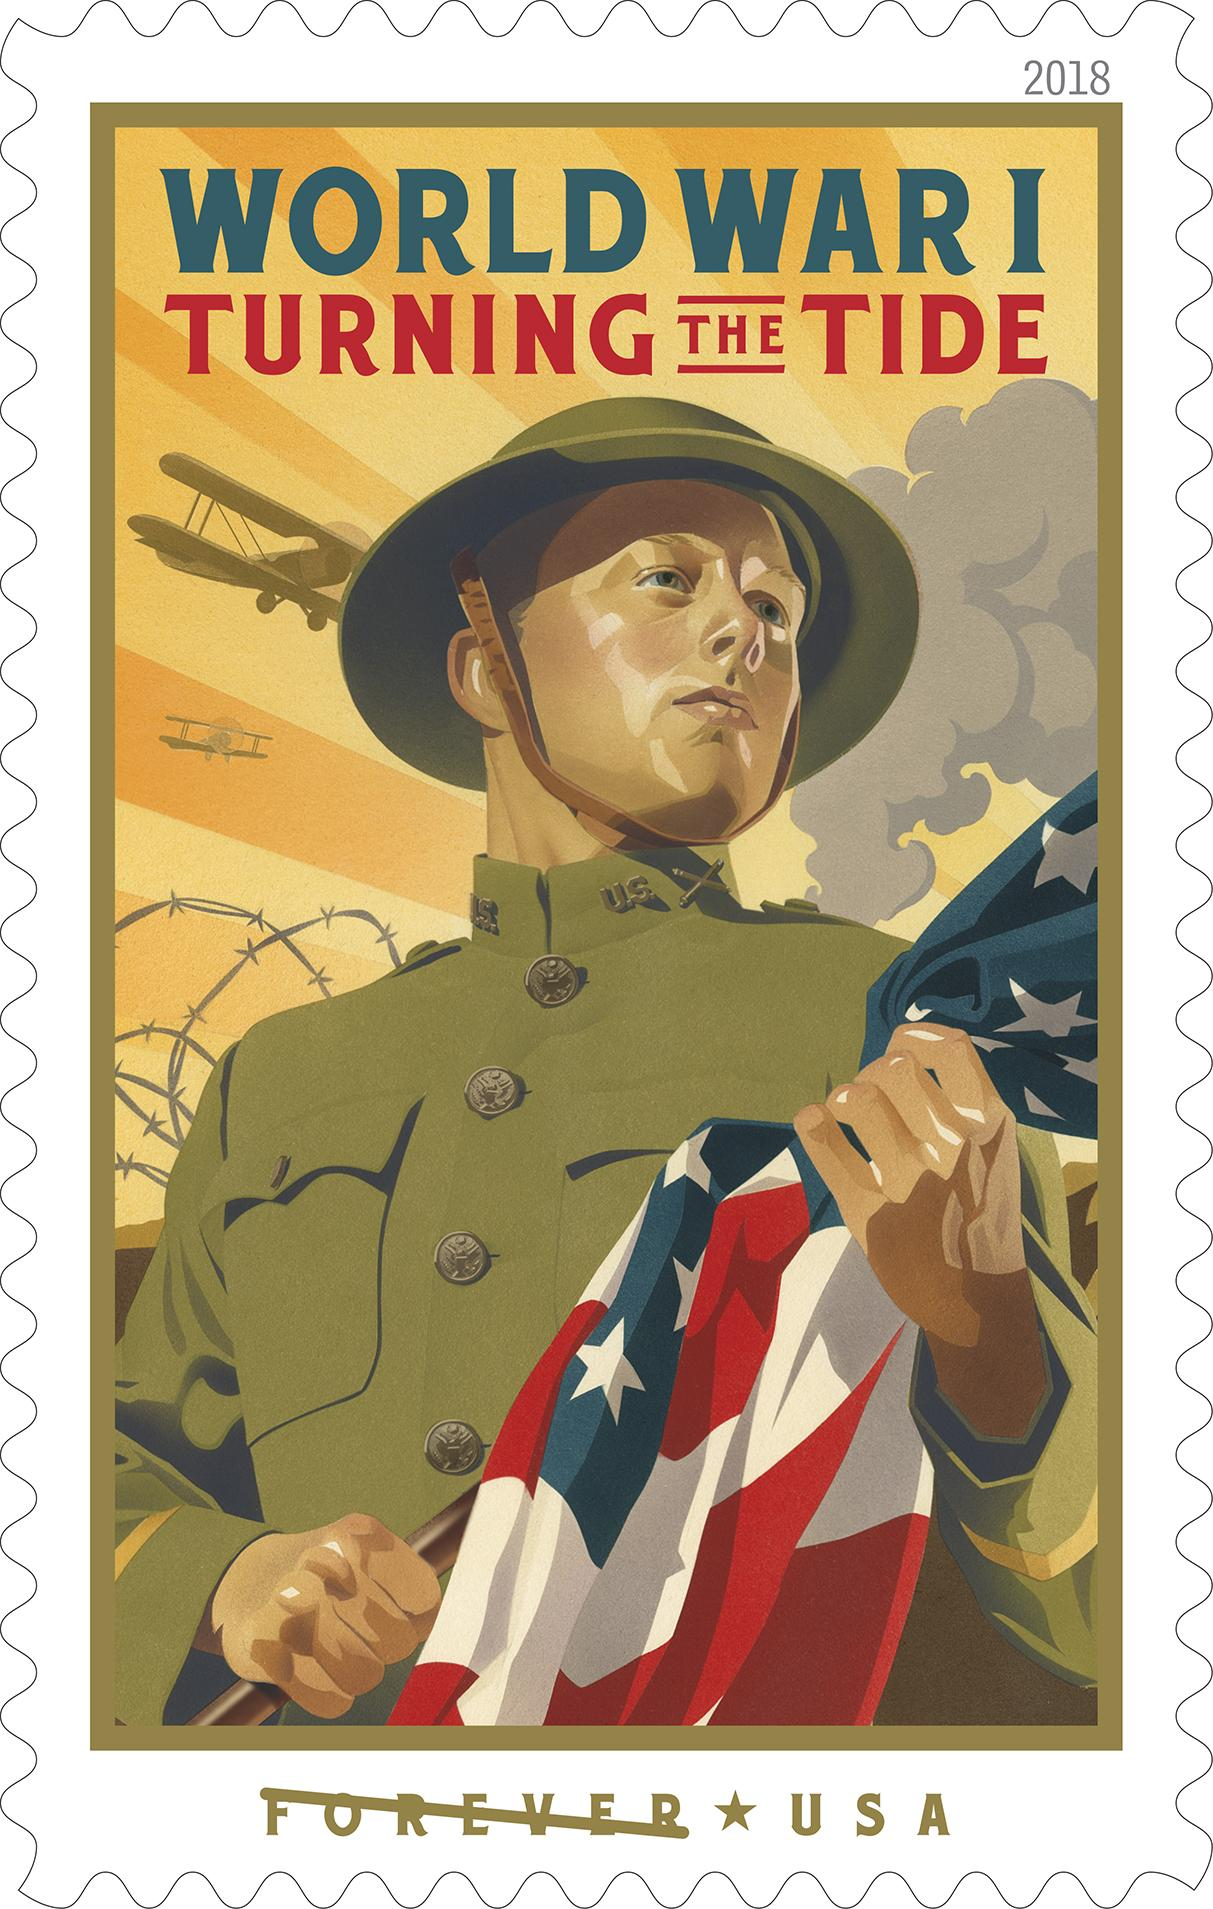 World War I: Turning the Tide - With this stamp, the Postal Service pays tribute to the sacrifice of American soldiers and millions of supporters on the home front who experienced World War I. Entering World War I (1914–1918) in its later stages, the United States helped turn the tide of war in favor of the Allies. (USPS)